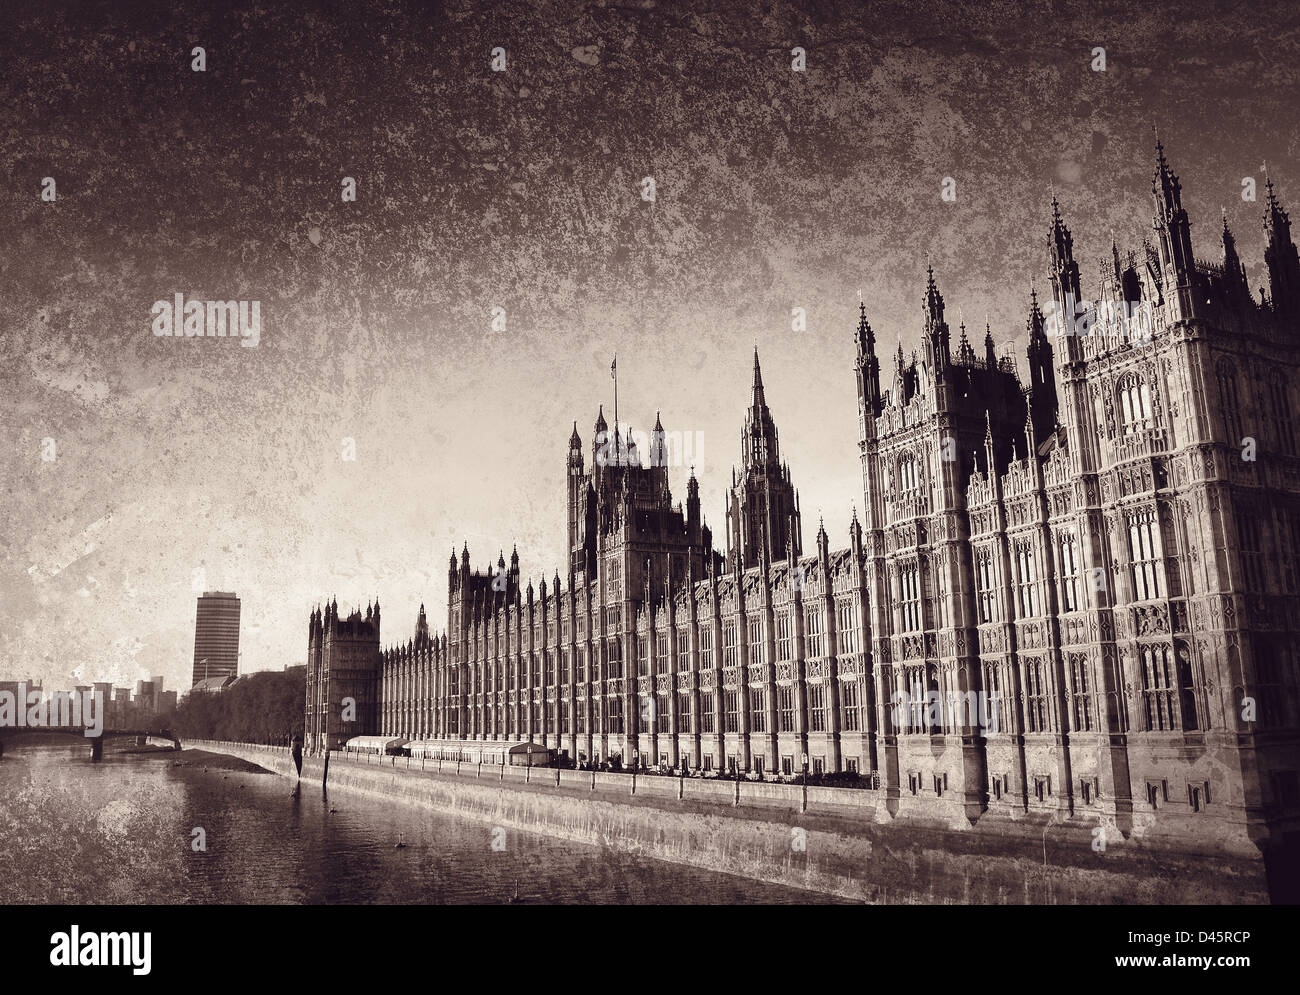 westminster on textured background - Stock Image